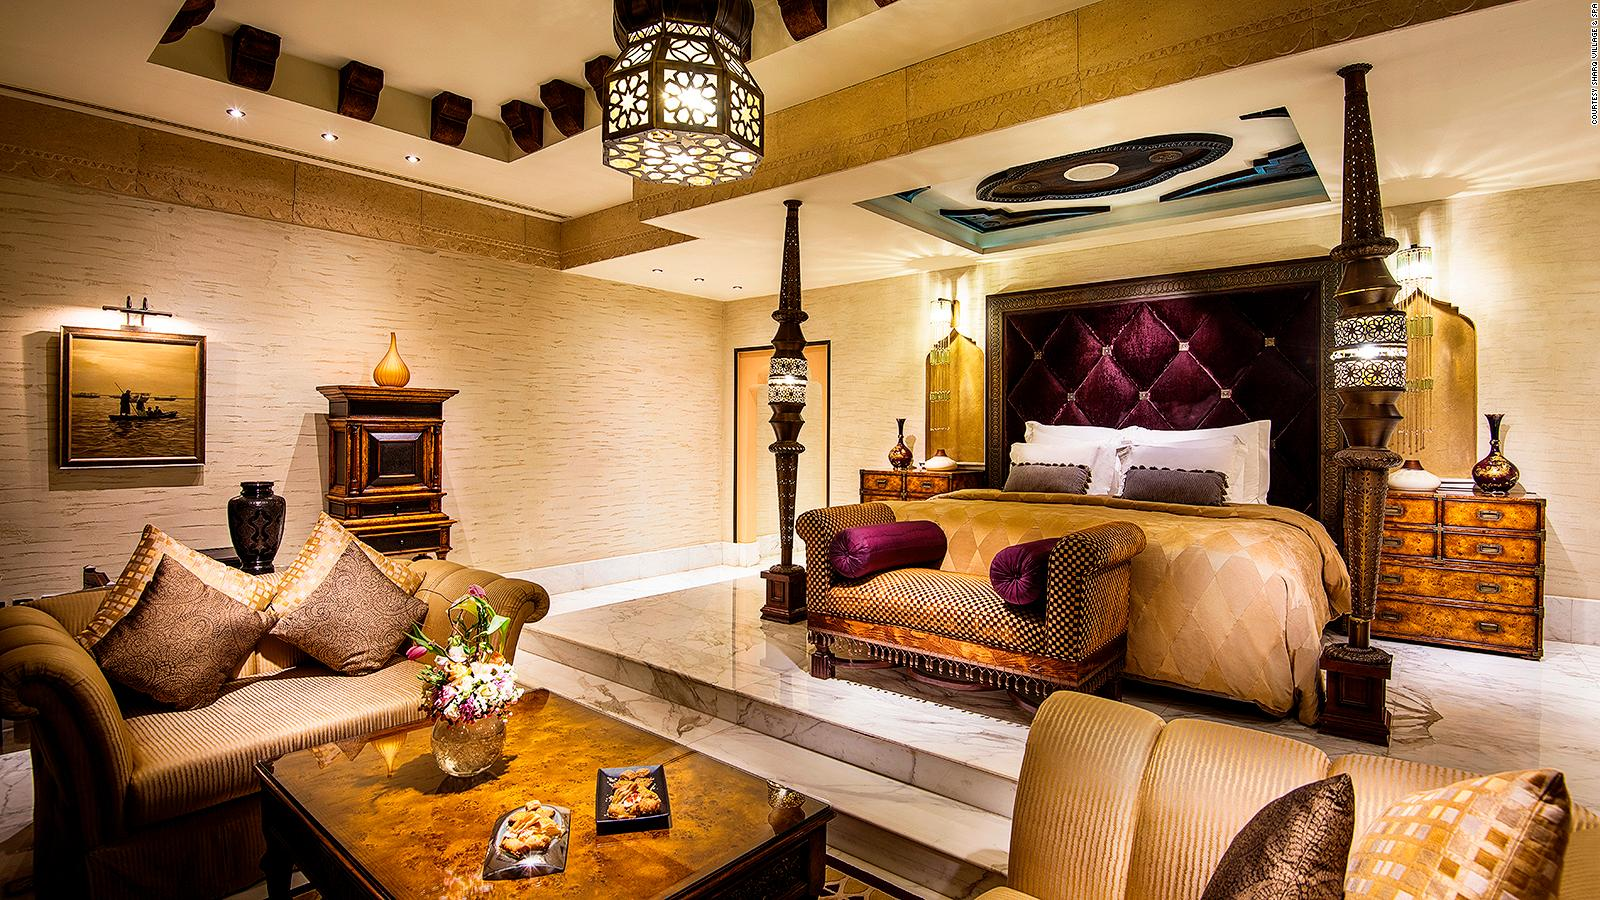 Hotel suites in Doha, Qatar: Your most deluxe places to stay | CNN